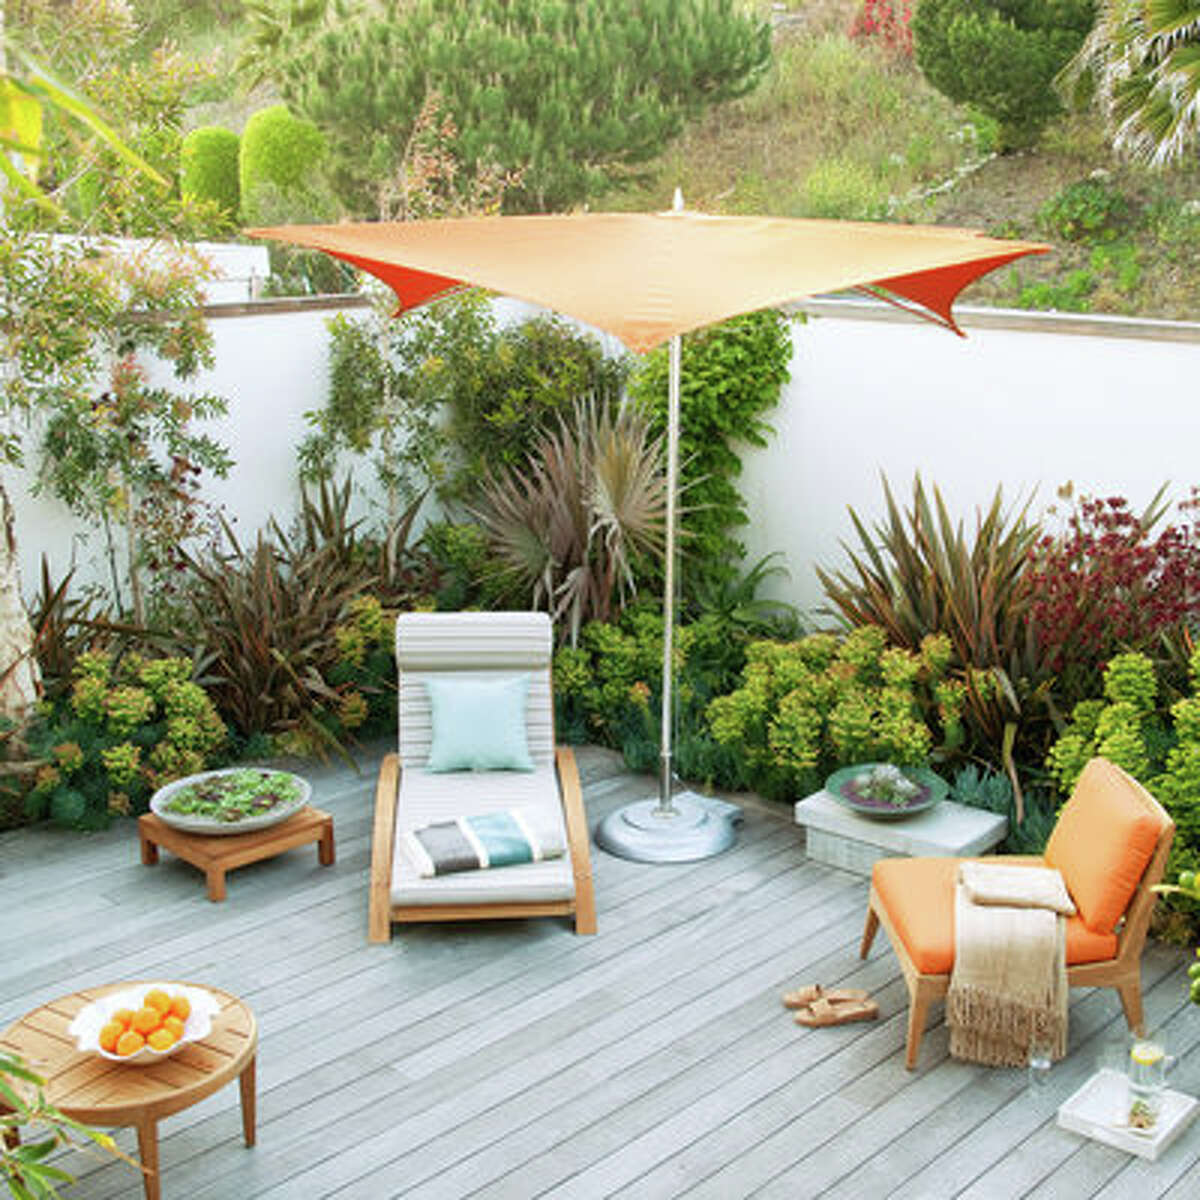 Staycation Bring out the striped cushions and colorful umbrellas, and get transported to a dream vacation spot right in your backyard. The deck is made of sustainable ipe wood that has weathered to a soft gray. Drought-tolerant plants need only yearly trimming and occasional watering-which leaves plenty of time to kick back on a lounge chair and bask in the sun.